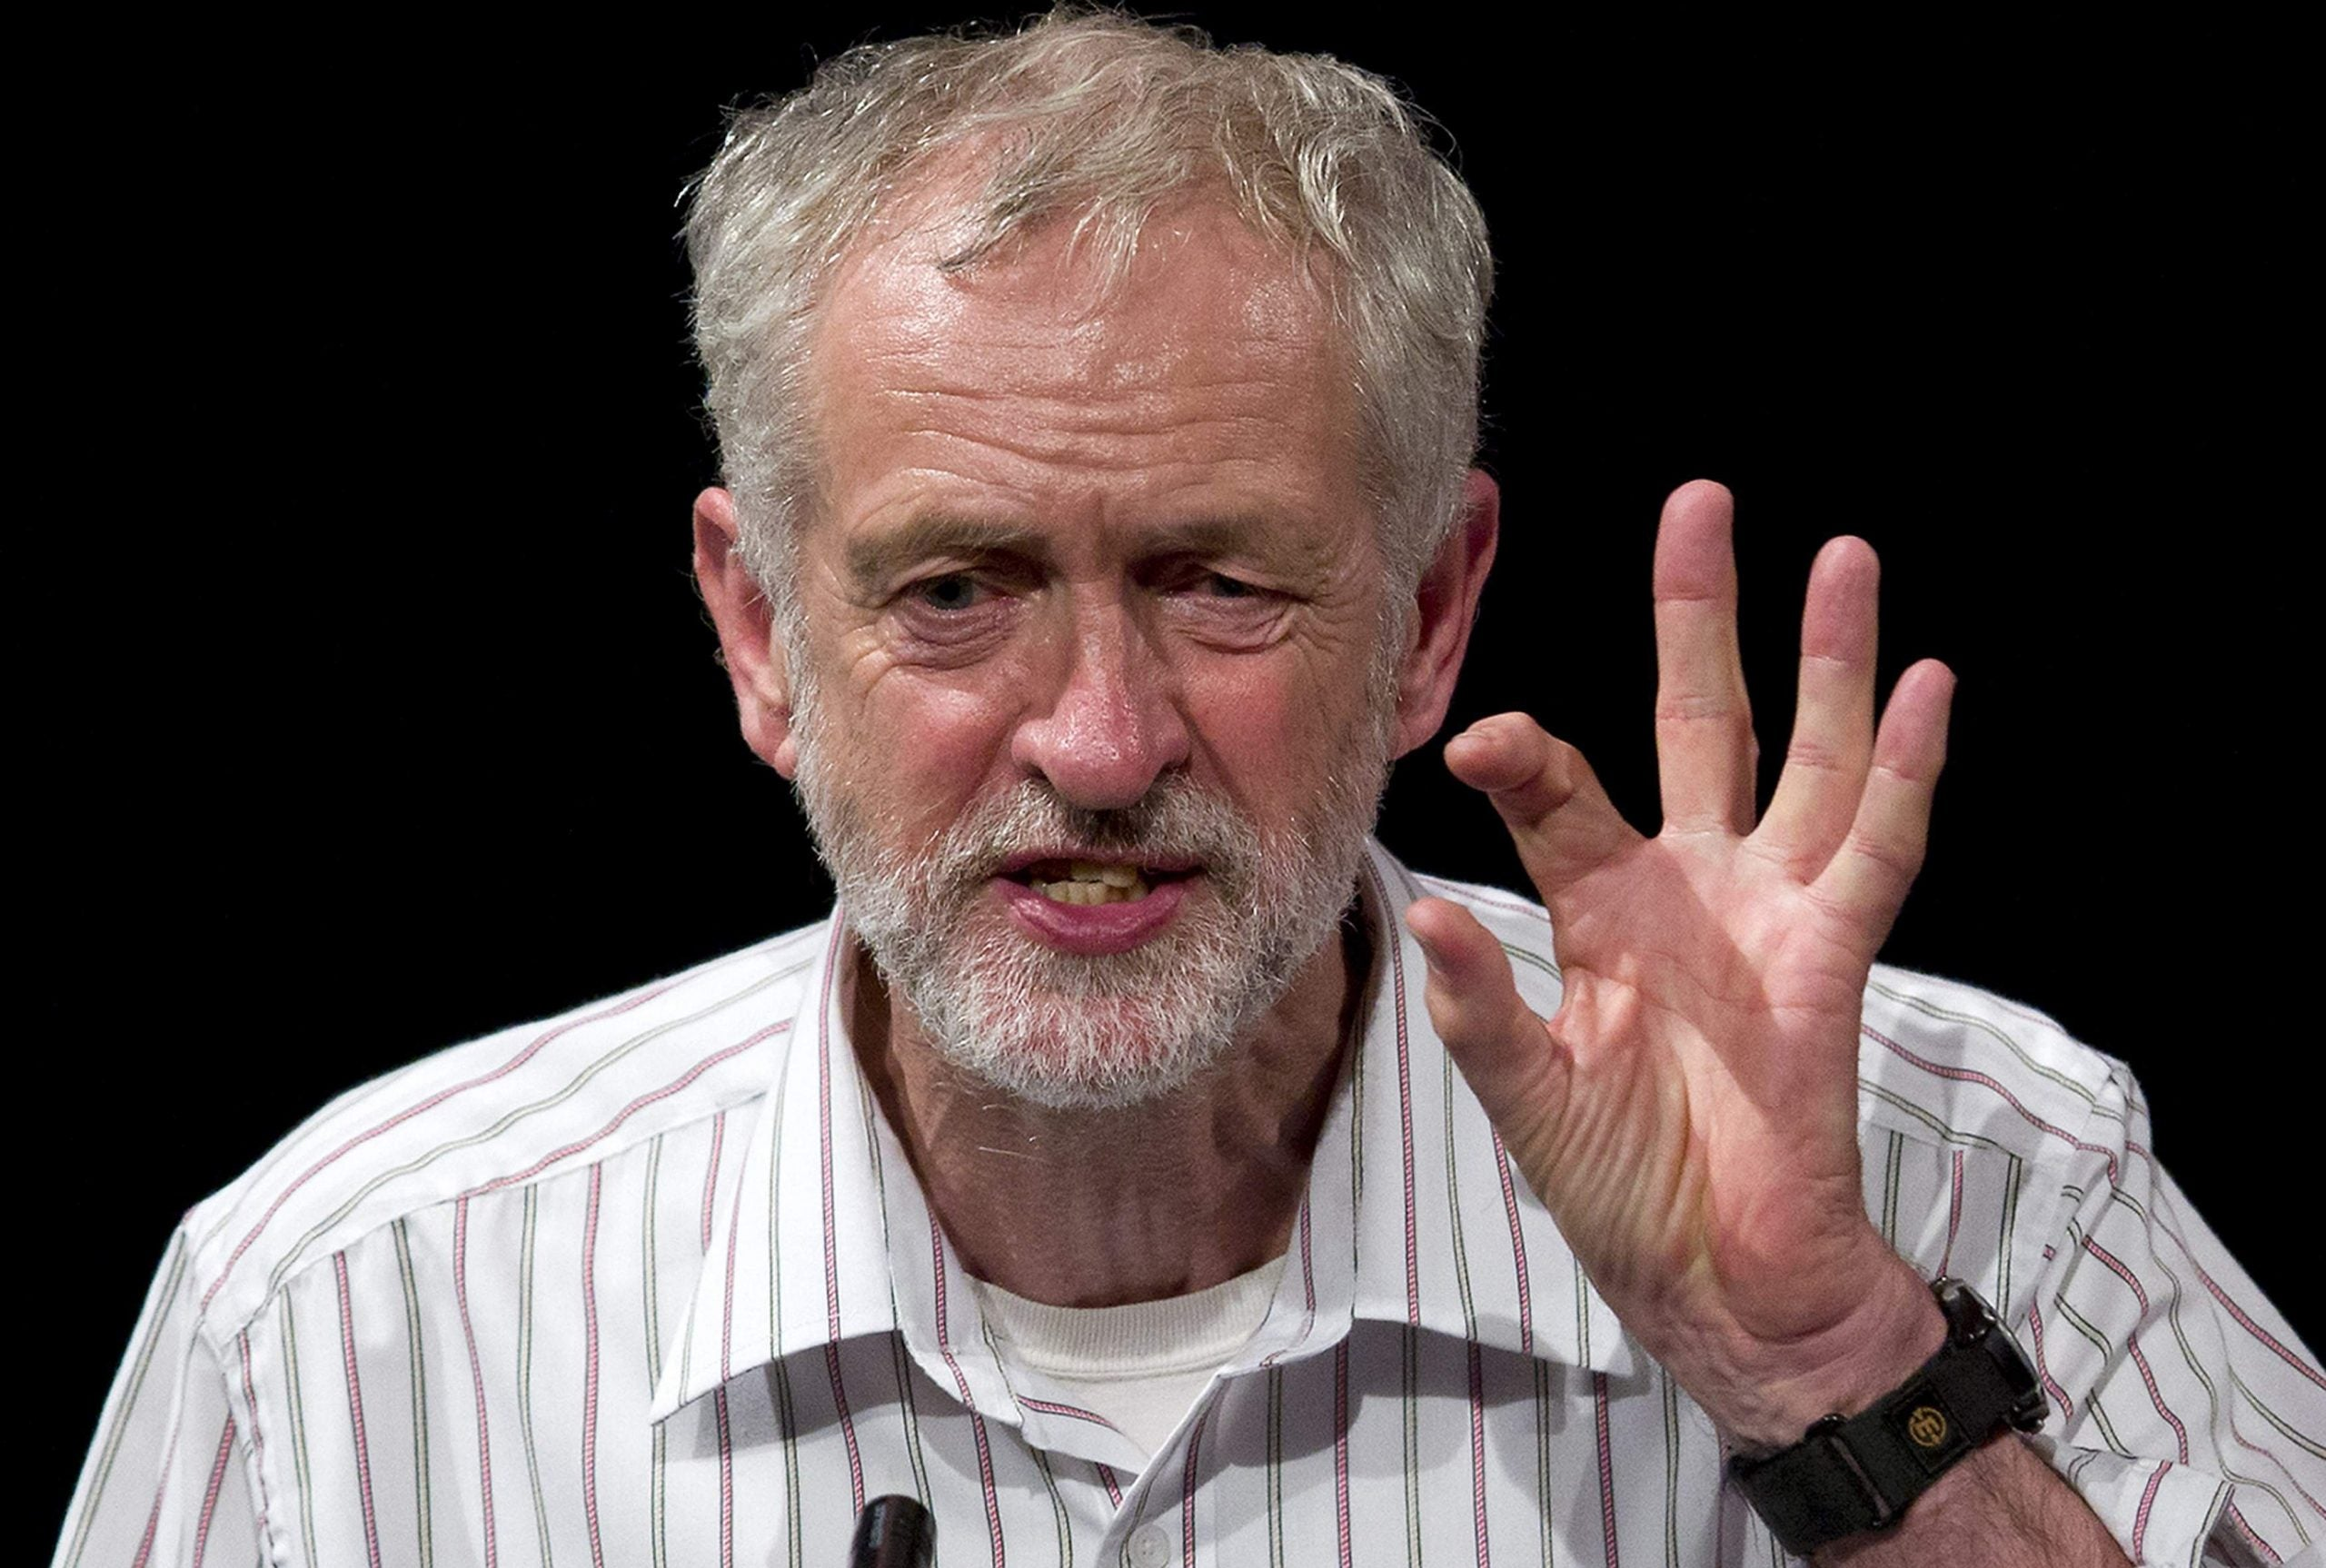 What does our latest poll mean for the Labour leadership race?